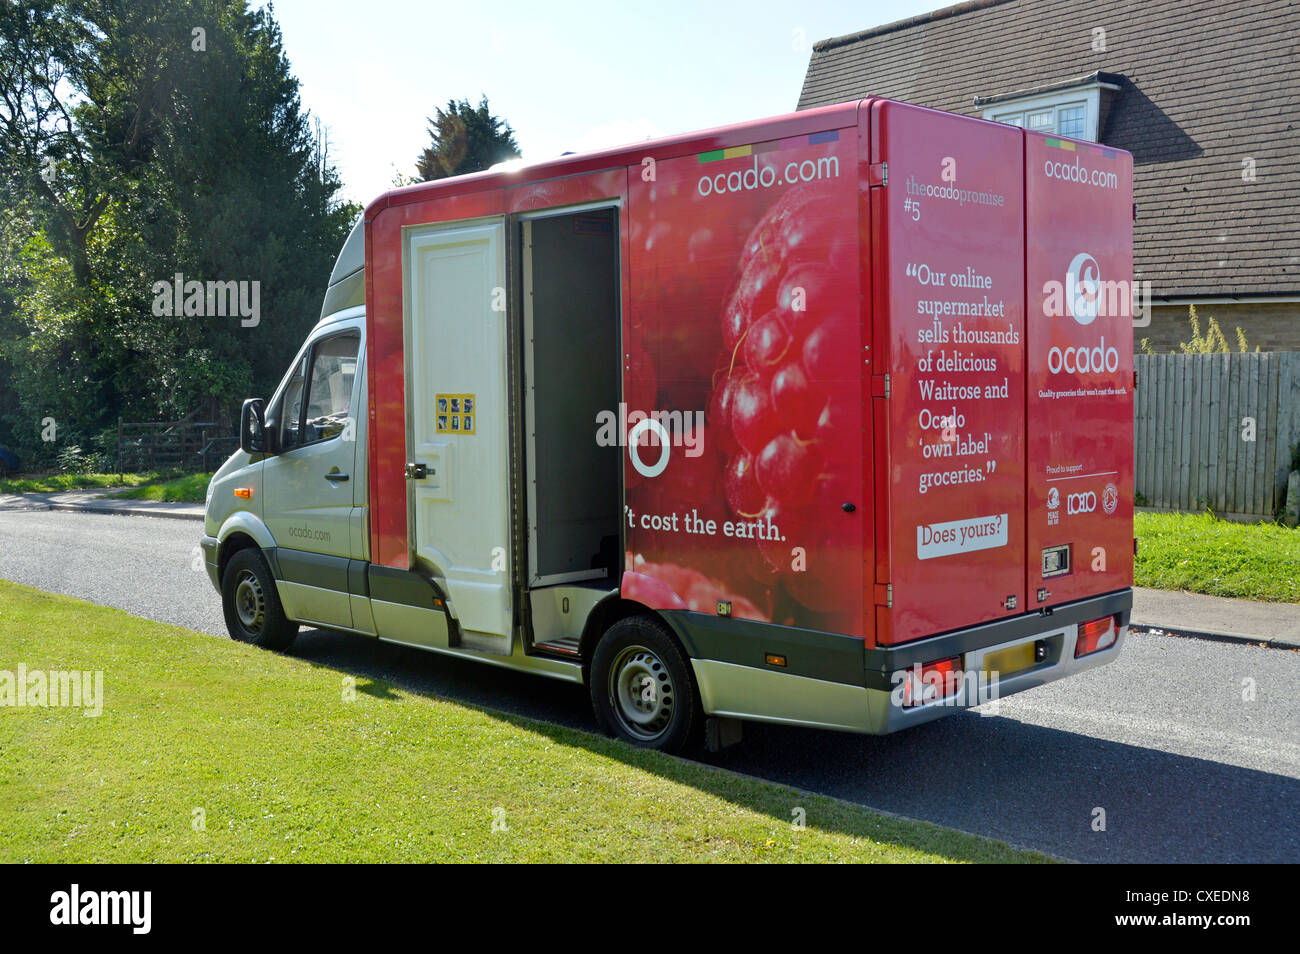 92e4e831c887e7 Ocado groceries home delivery van parked in residential turning whilst  driver makes deliveries to nearby home Brentwood Essex England UK